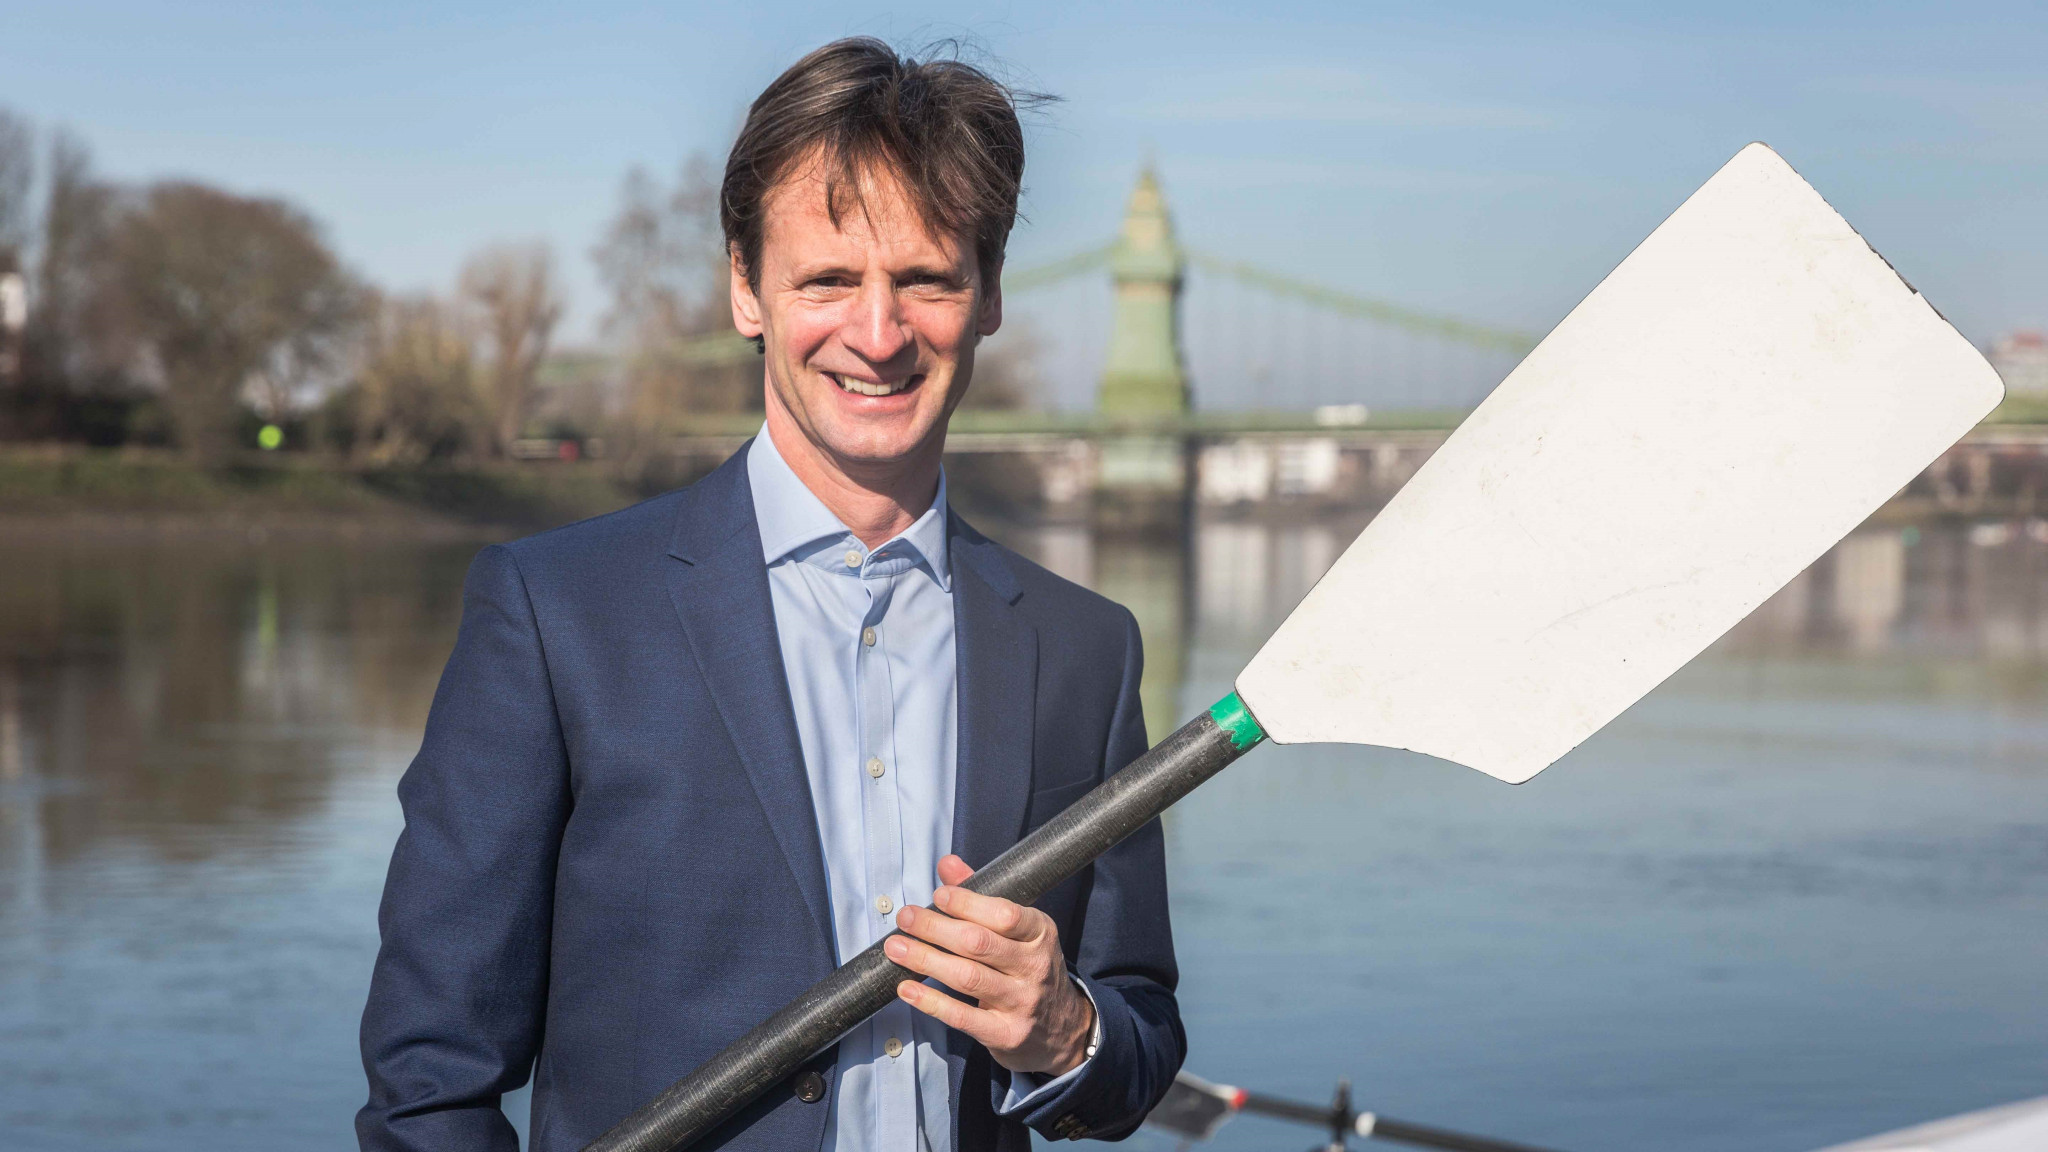 British Rowing has announced the appointment of Mark Davies as its new chair ©British Rowing/Nick Middleton